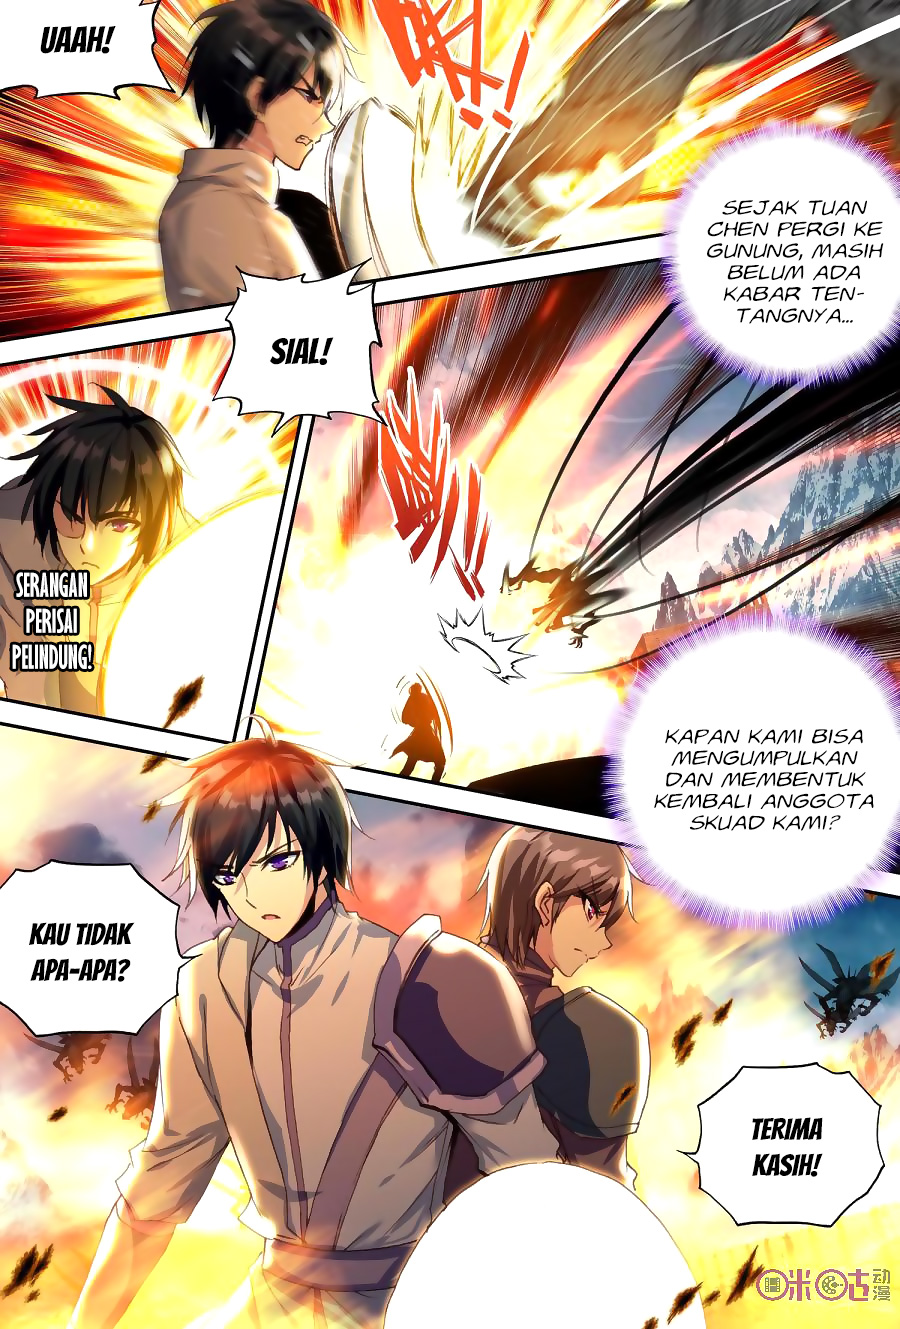 Komik shen yin wang zuo 152 - chapter 152 153 Indonesia shen yin wang zuo 152 - chapter 152 Terbaru 19|Baca Manga Komik Indonesia